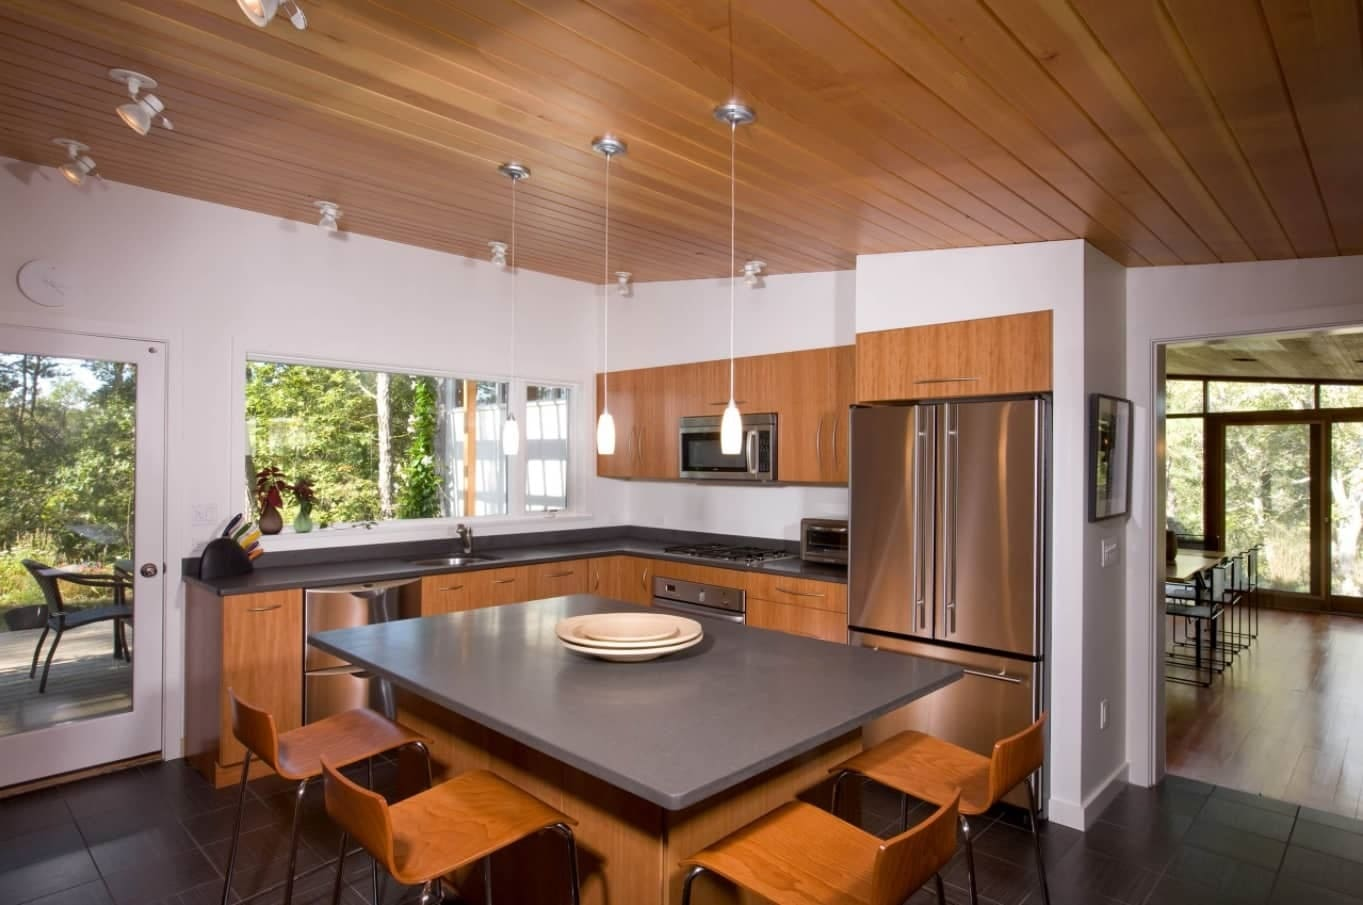 Top 15 Best Wooden Ceiling Design Ideas. Noble elm wood plank ceiling tint in modern kitchen interior with black table